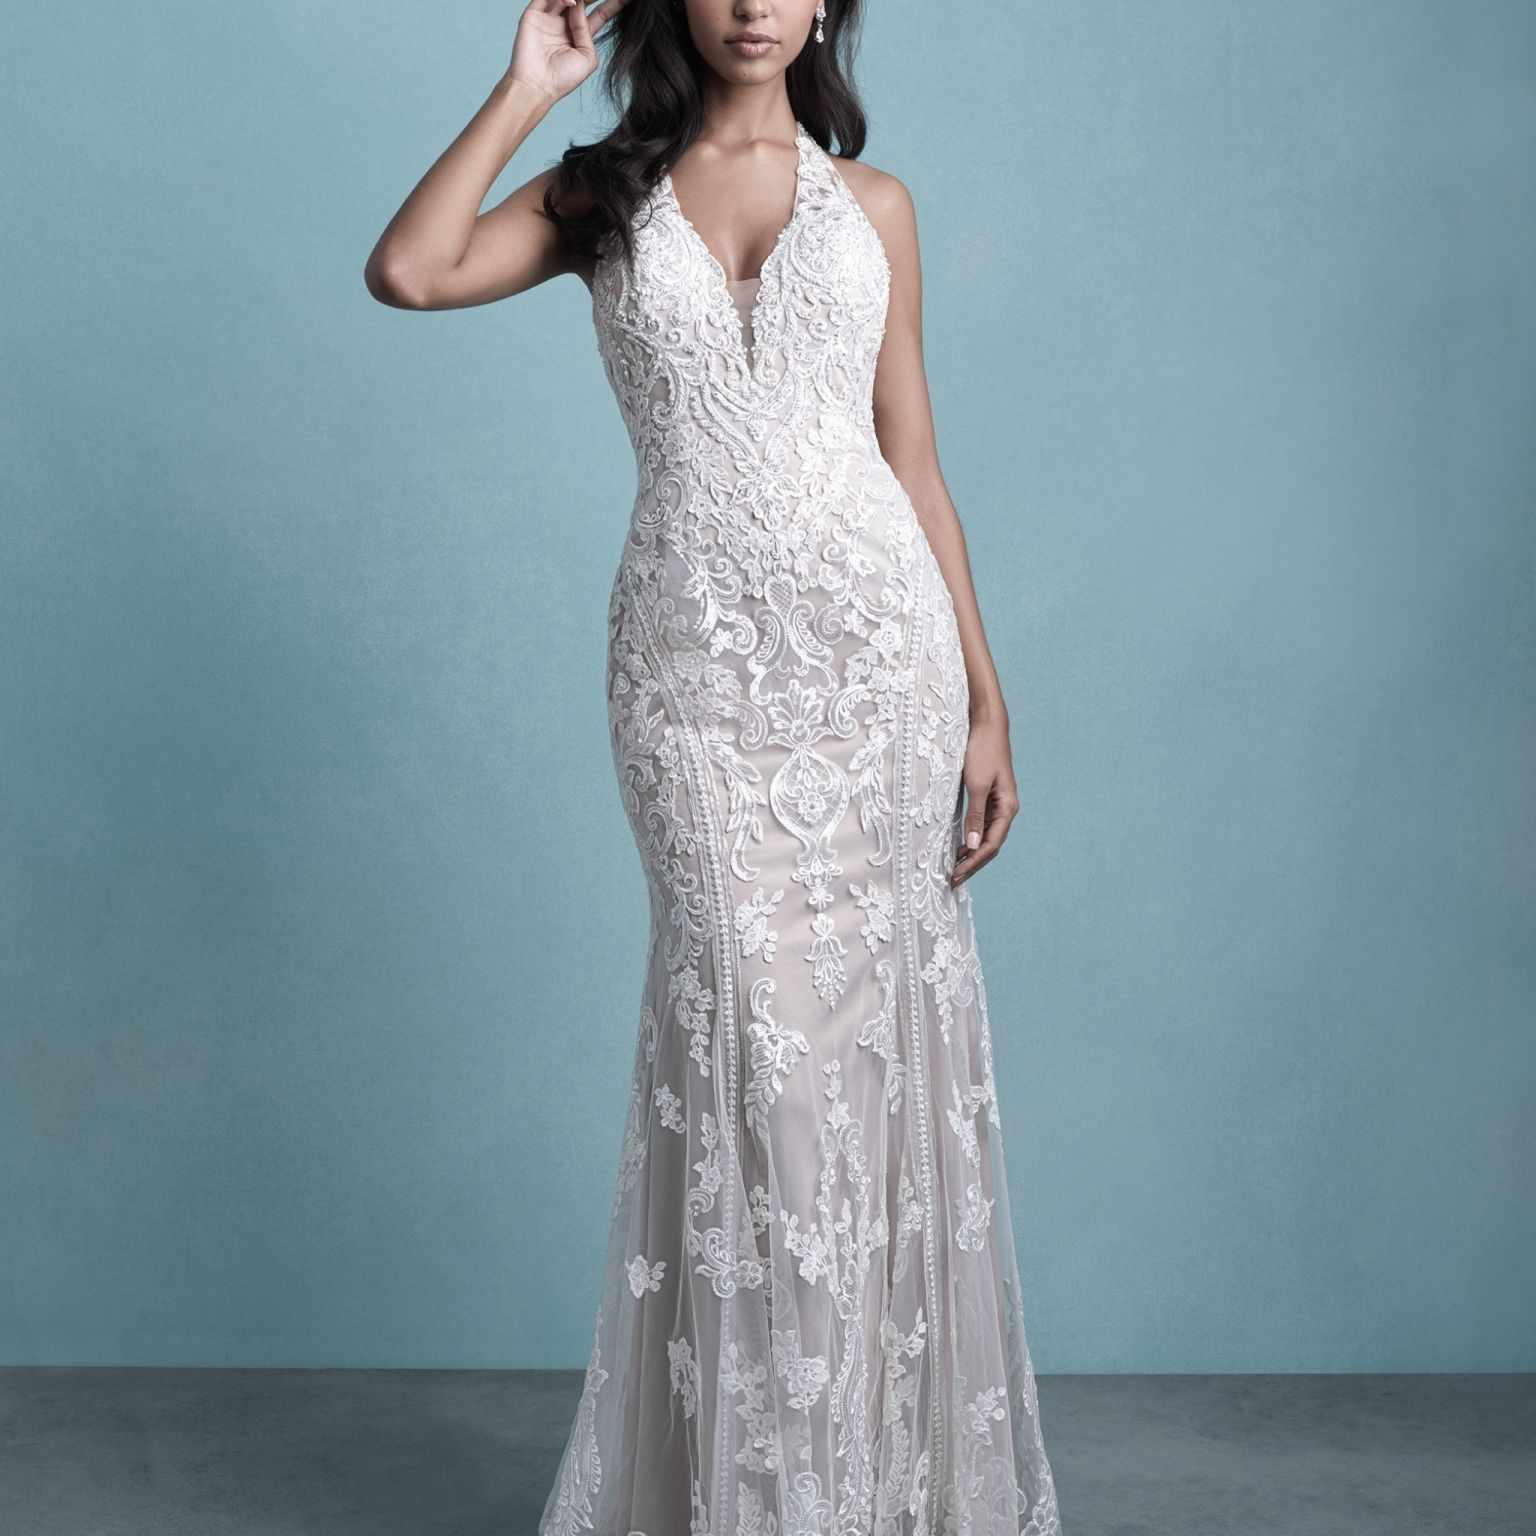 Model in beaded illusion wedding gown